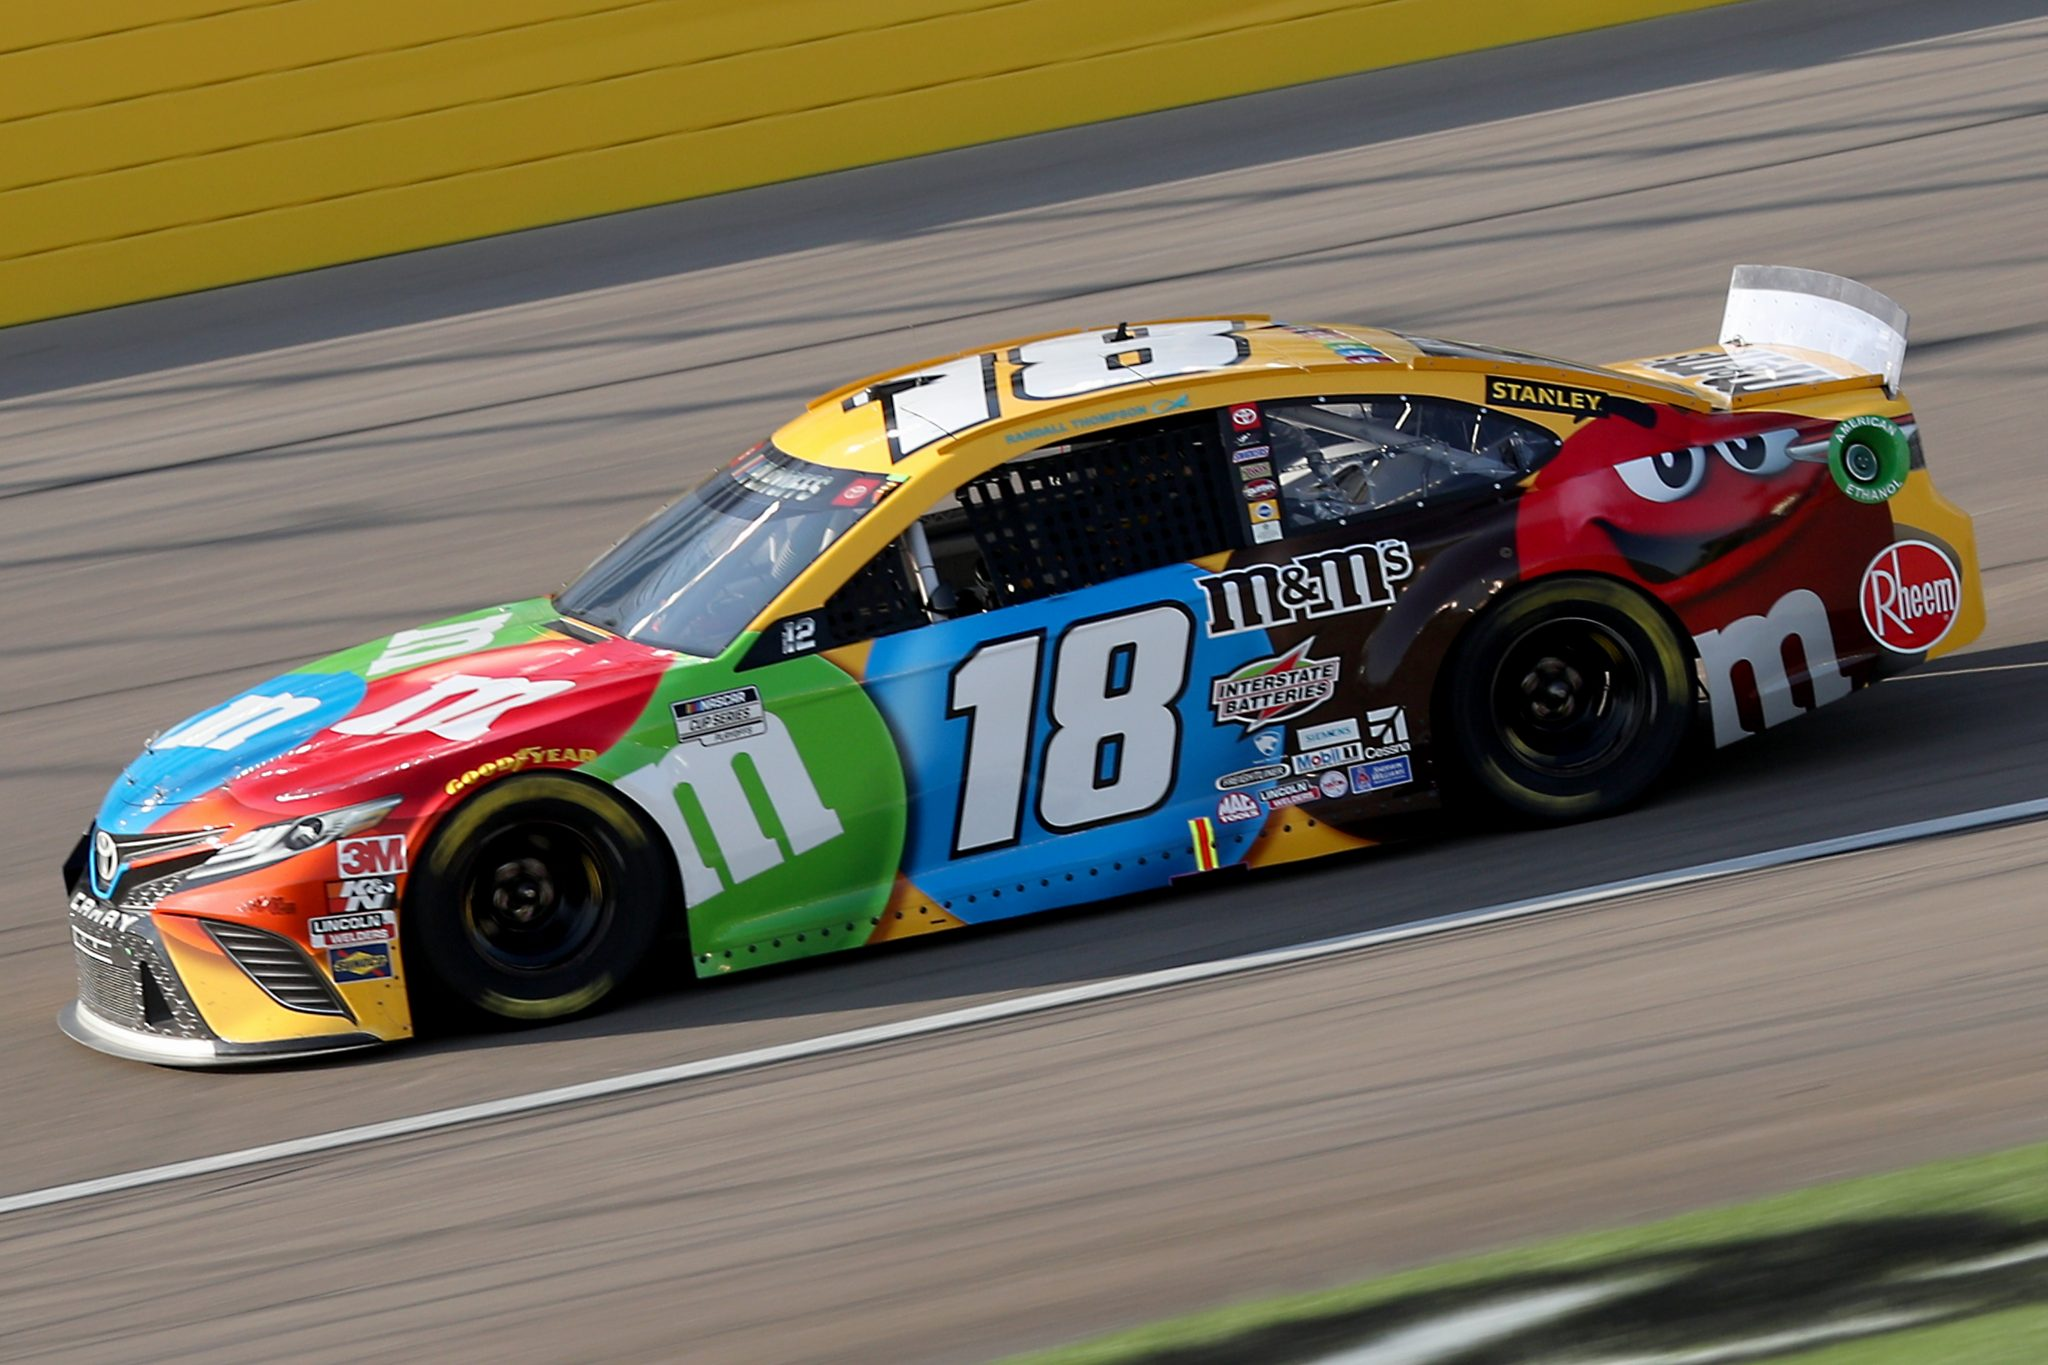 LAS VEGAS, NEVADA - SEPTEMBER 27: Kyle Busch, driver of the #18 M&M's Toyota, drives during the NASCAR Cup Series South Point 400 at Las Vegas Motor Speedway on September 27, 2020 in Las Vegas, Nevada. (Photo by Chris Graythen/Getty Images) | Getty Images